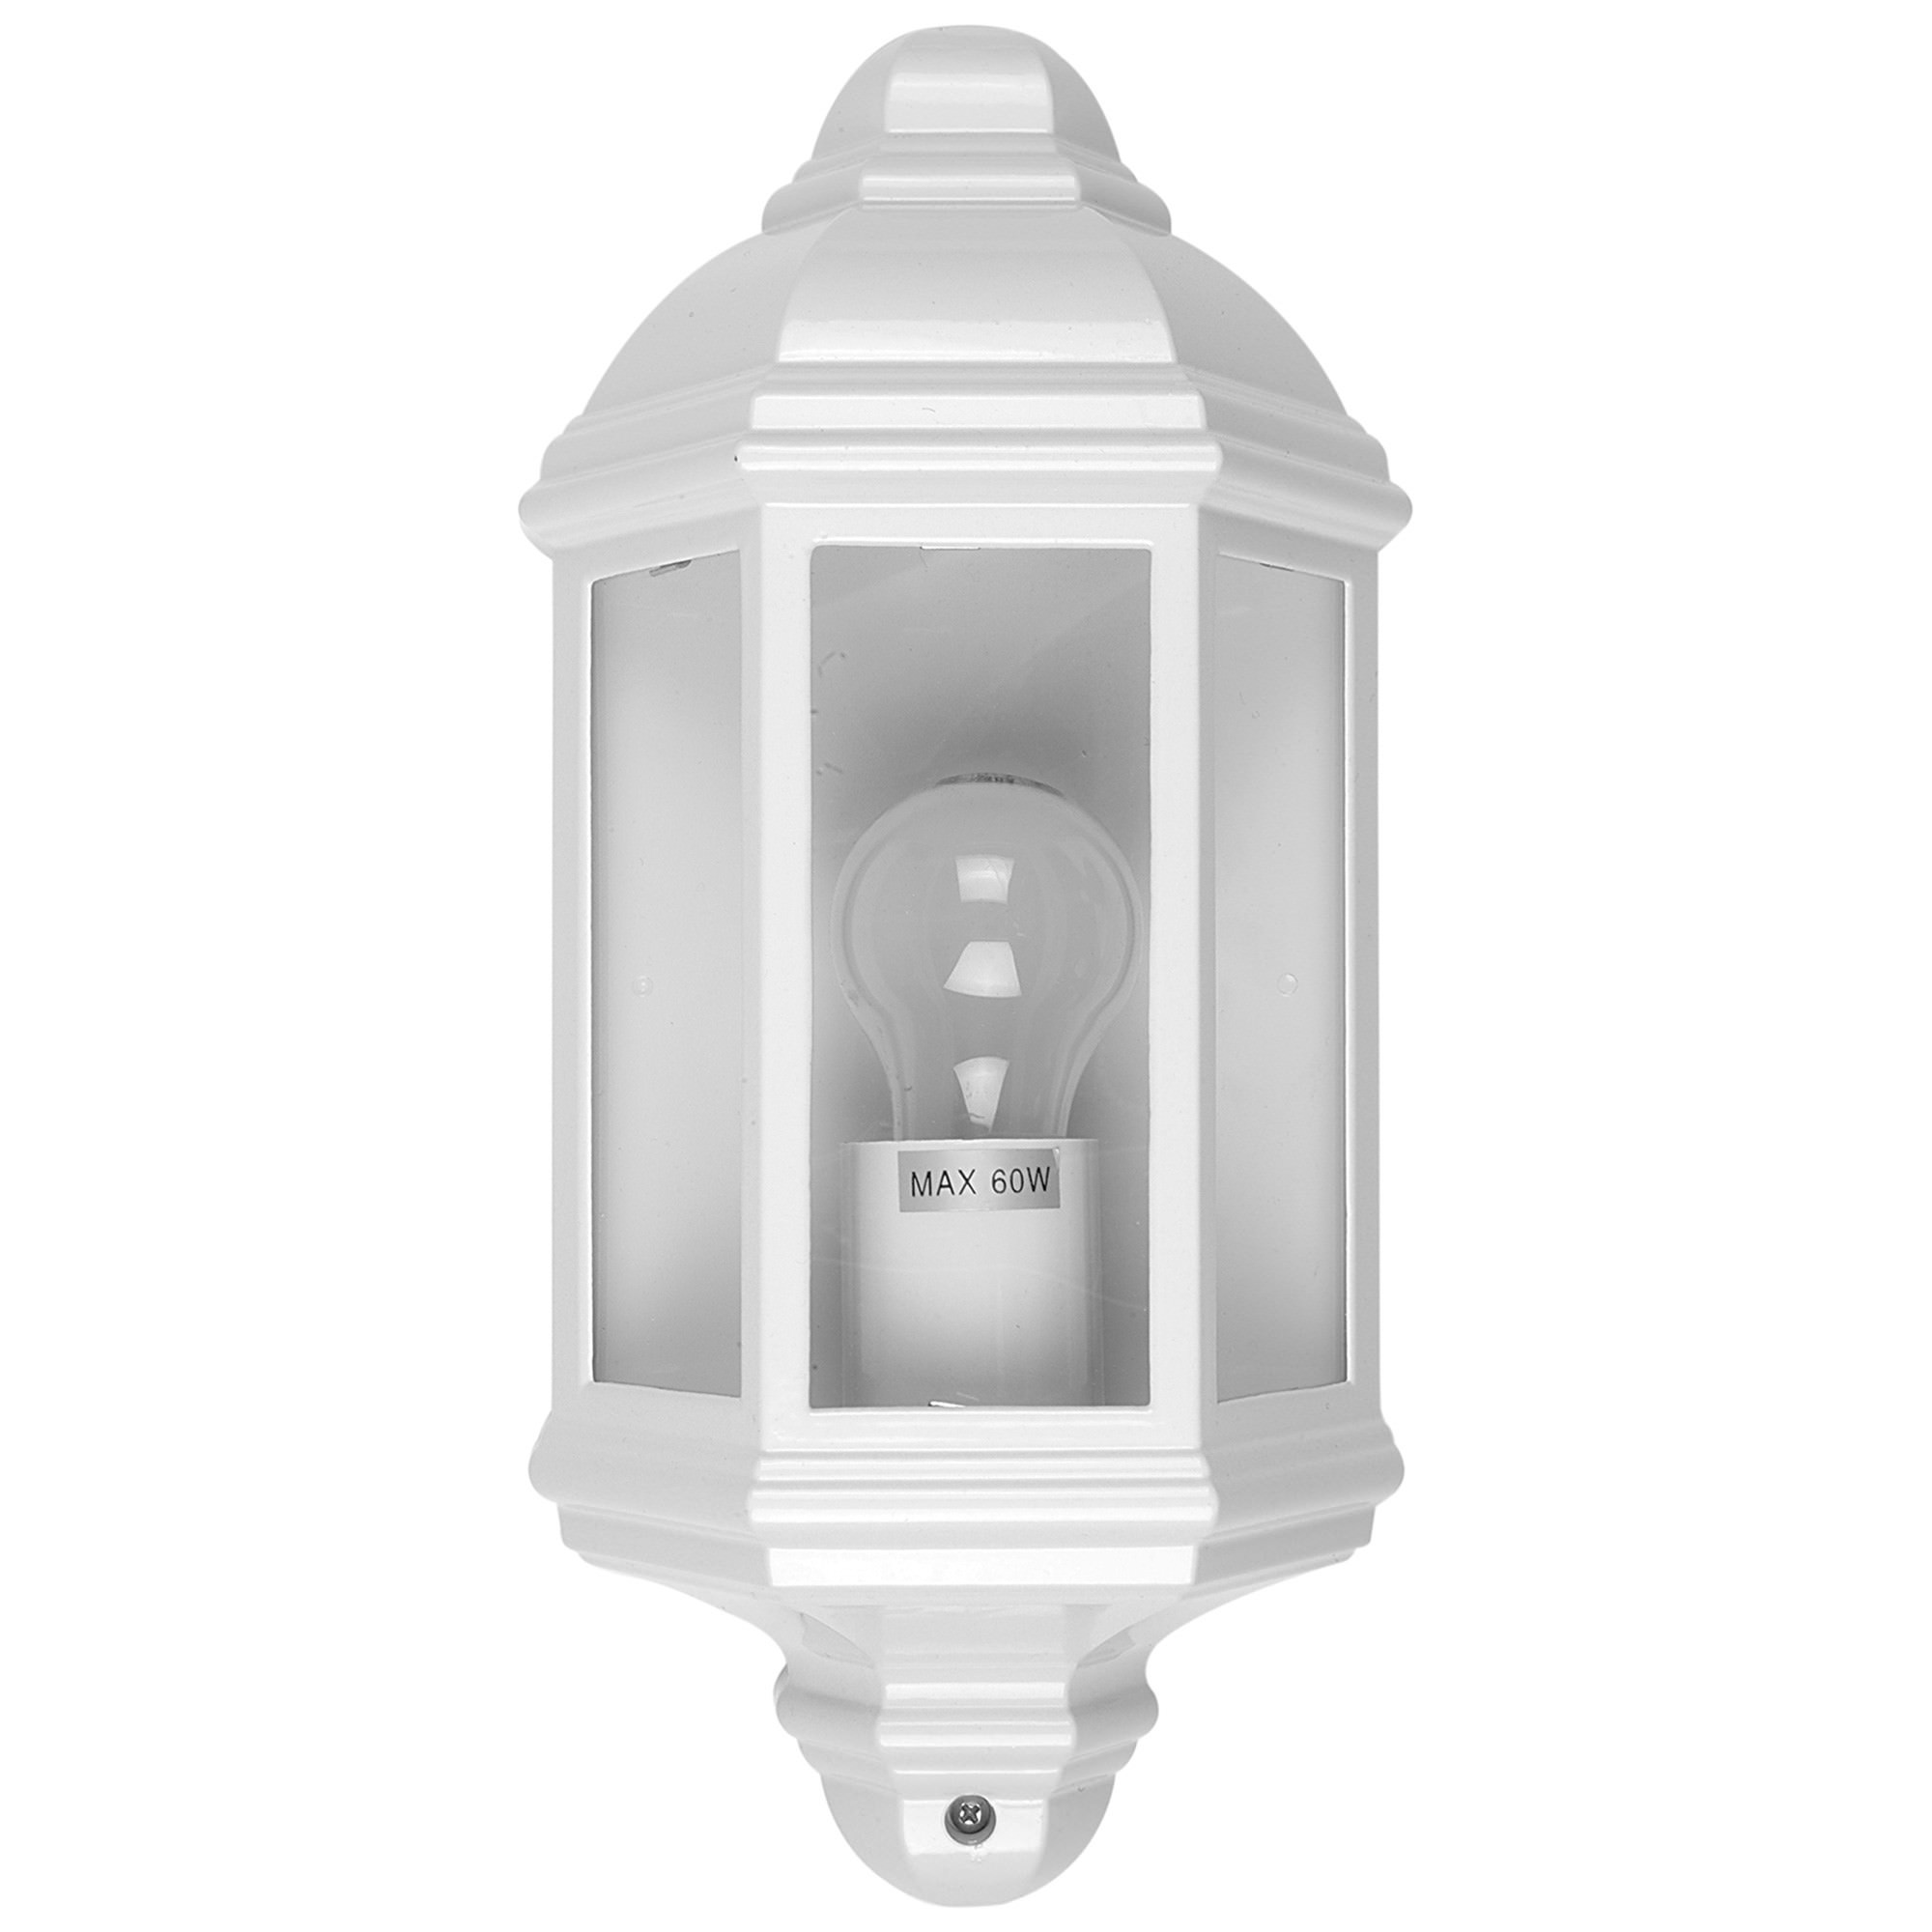 Fenchurch IP44 Exterior Wall Light, White